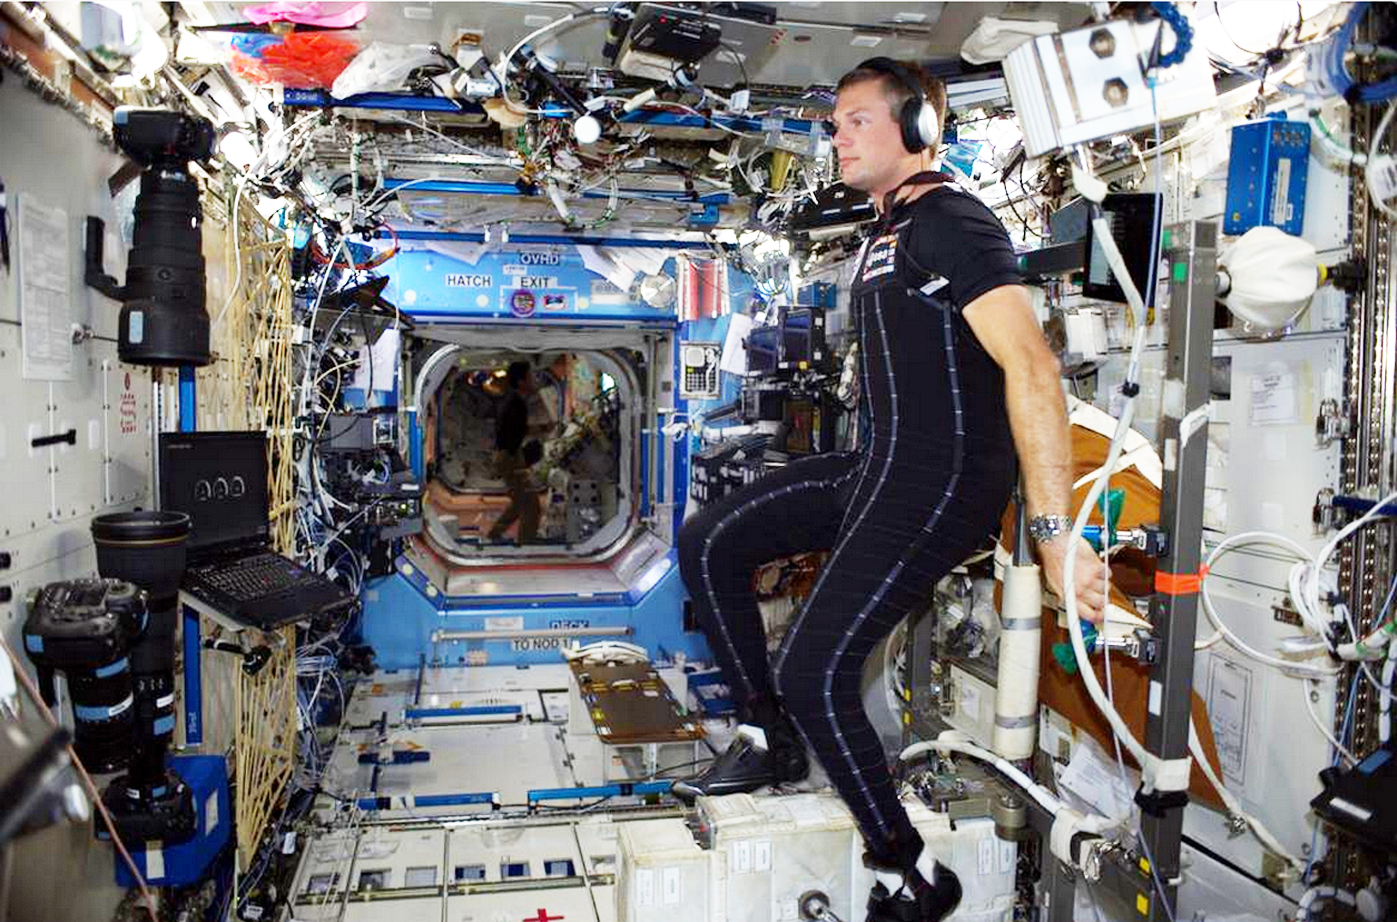 Denmark's first astronaut, Andreas Mogensen, trials an earlier version of the skinsuit on the ISS in 2015 to test its effectiveness in the weightless conditions.